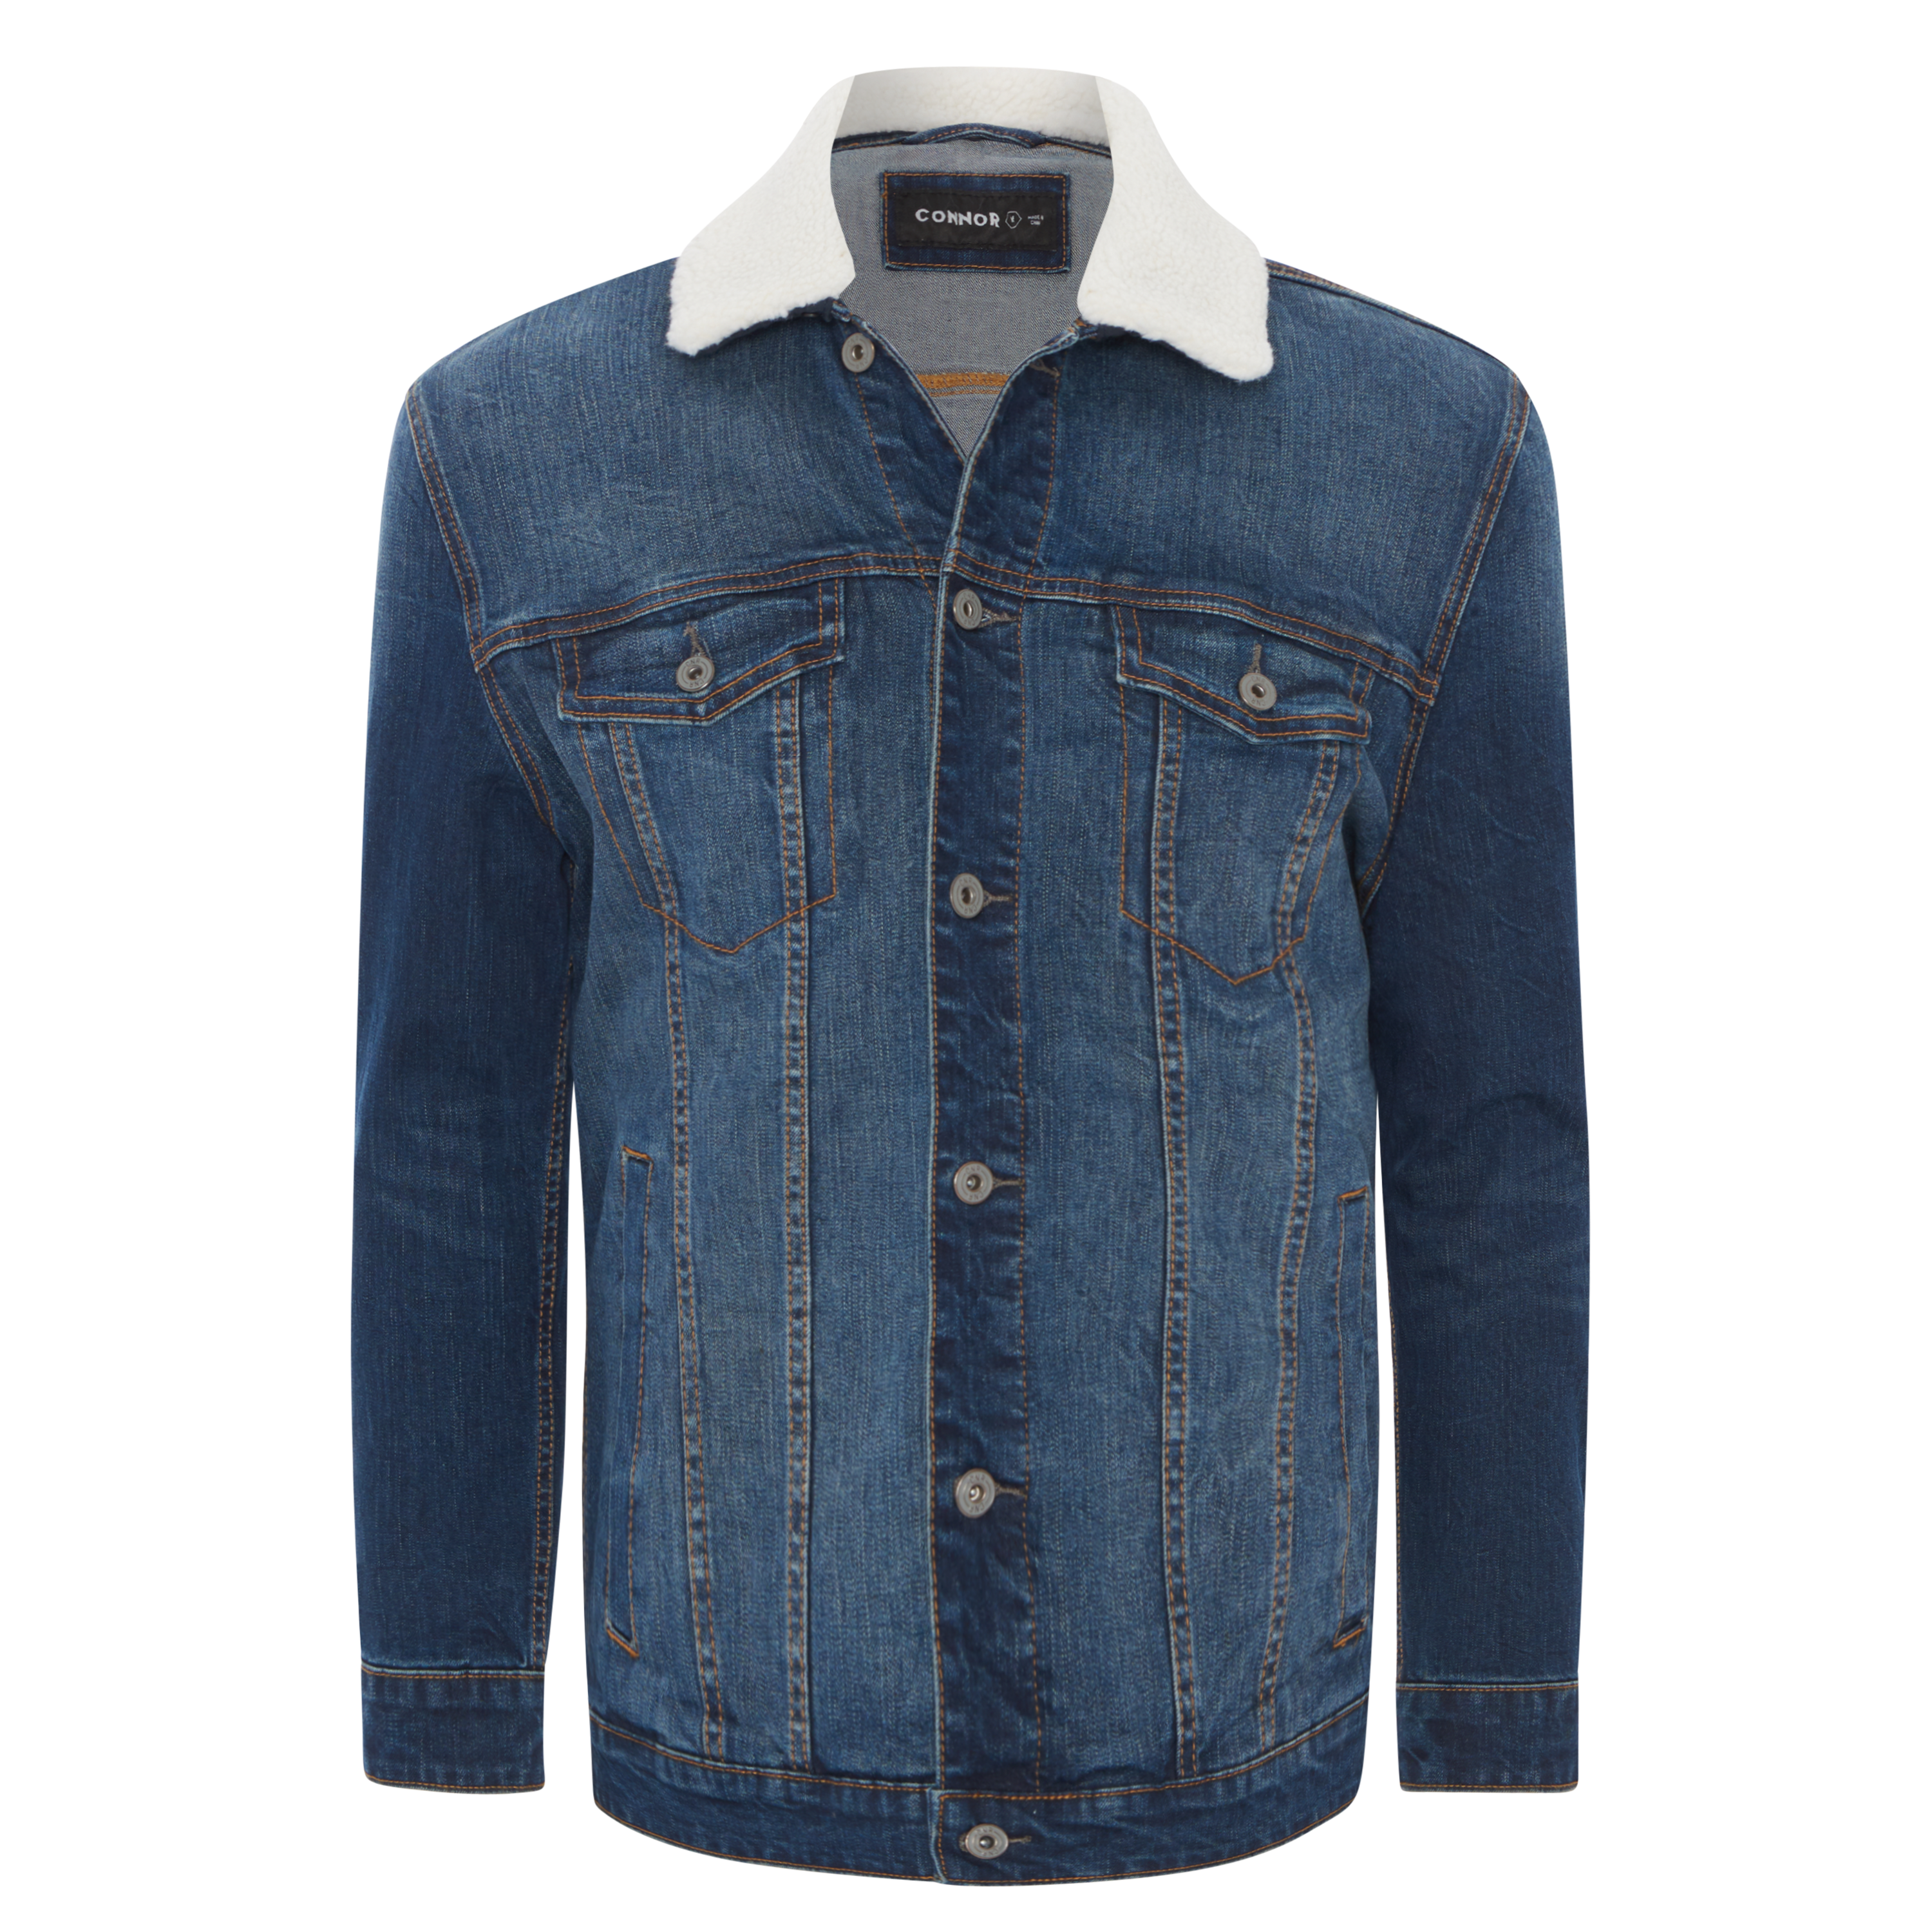 AXEL DENIM JACKET.